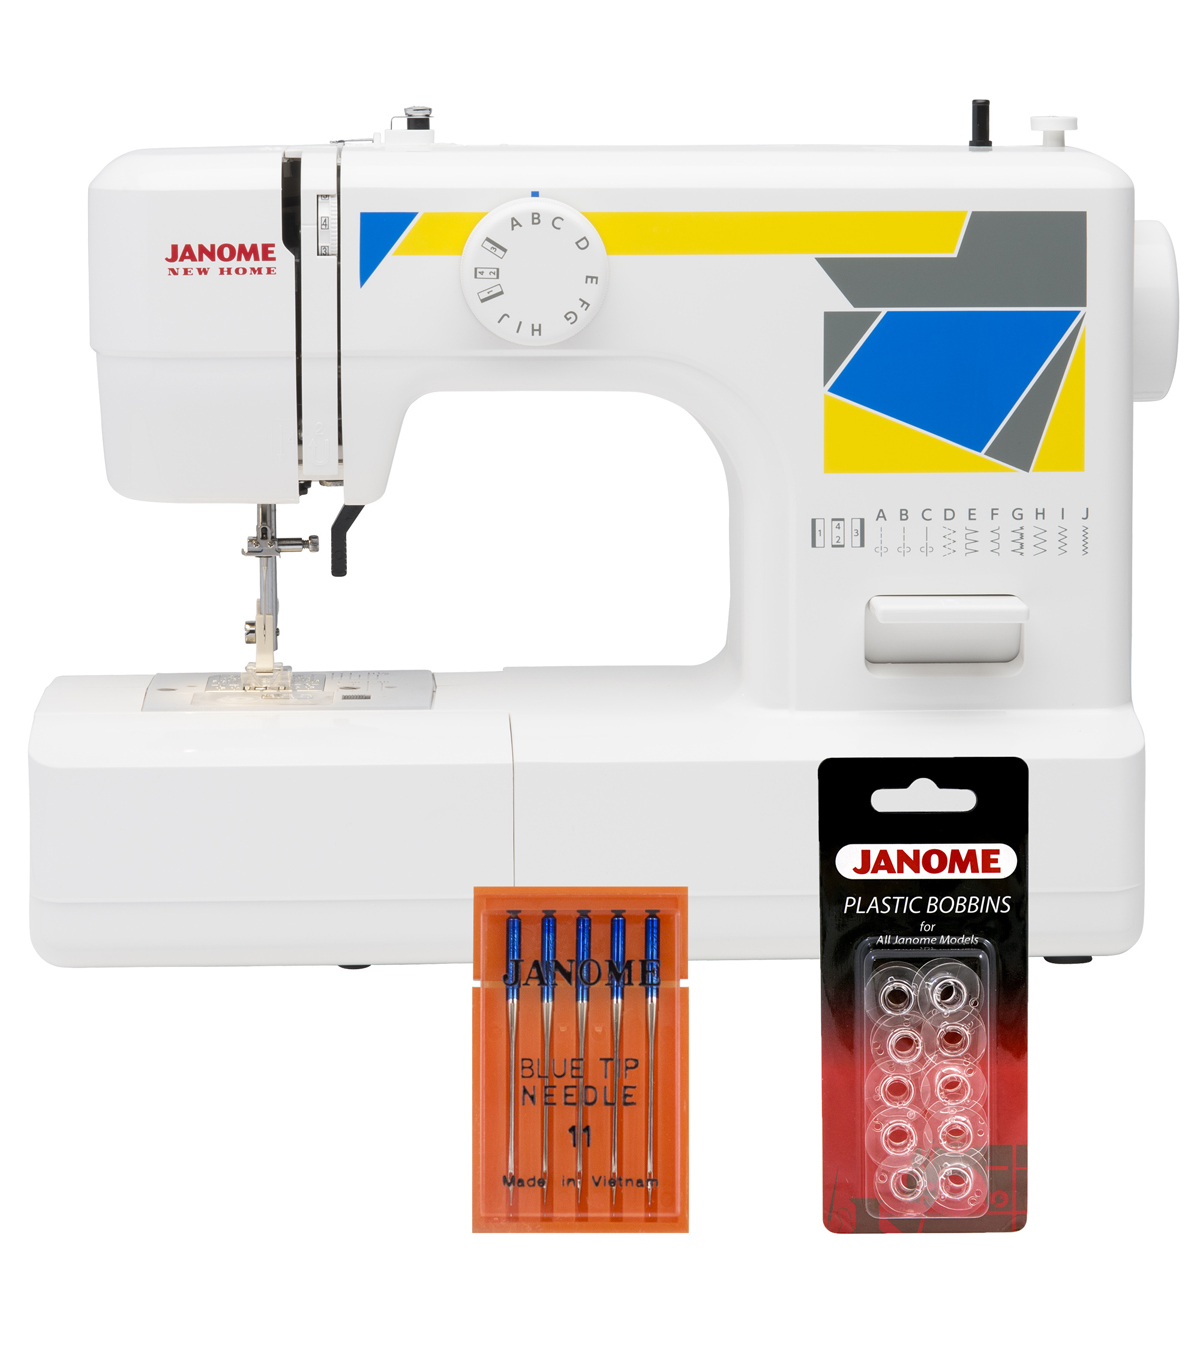 Janome MOD-11 Sewing Machine with Bonus Accessories